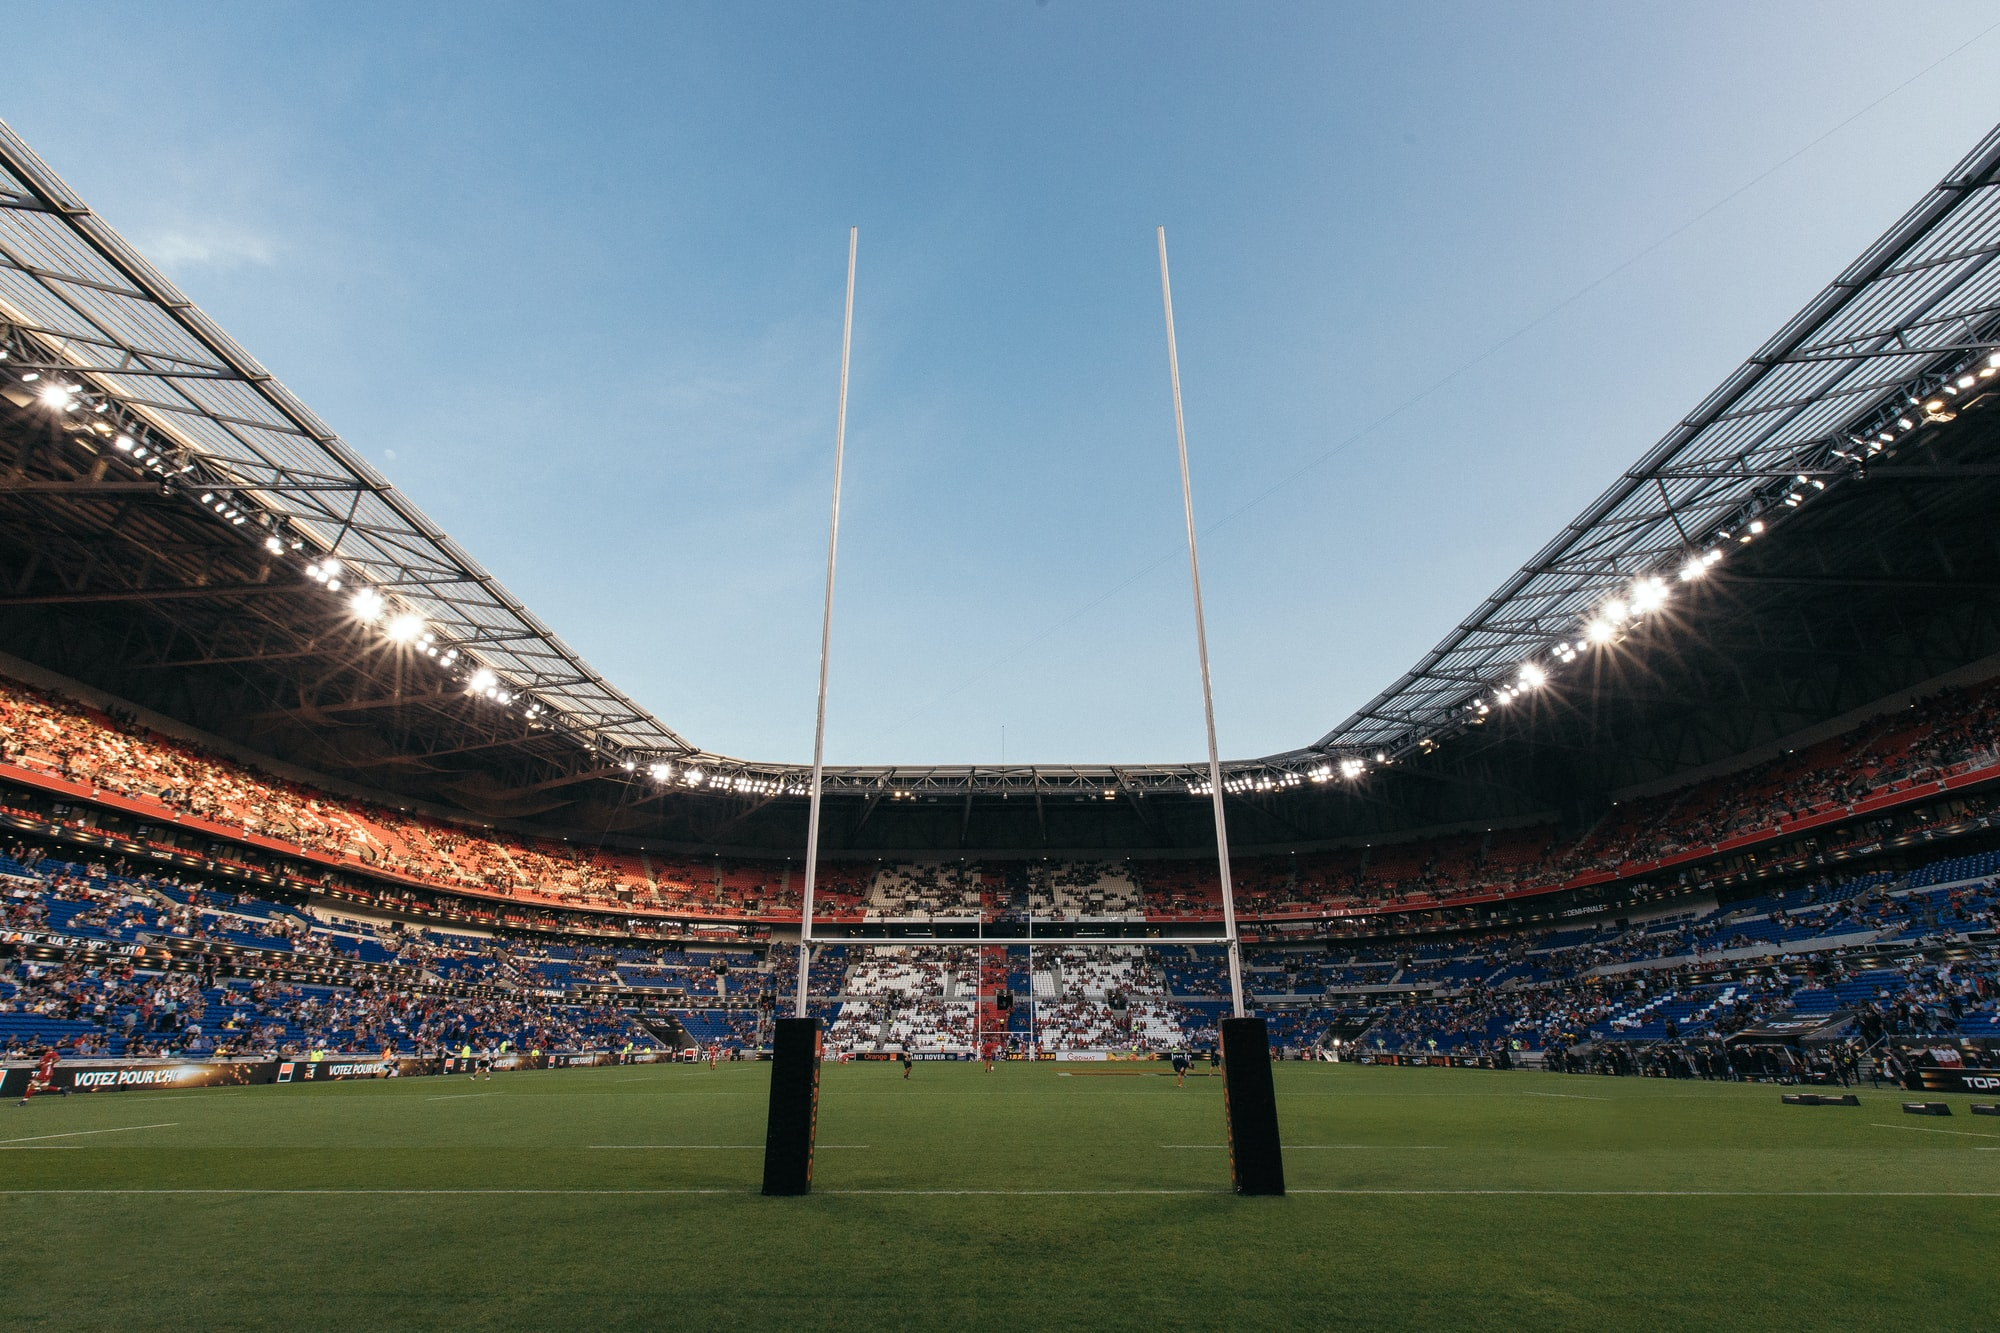 Official VIP Hospitality for the Lions is the first post-coronavirus contract